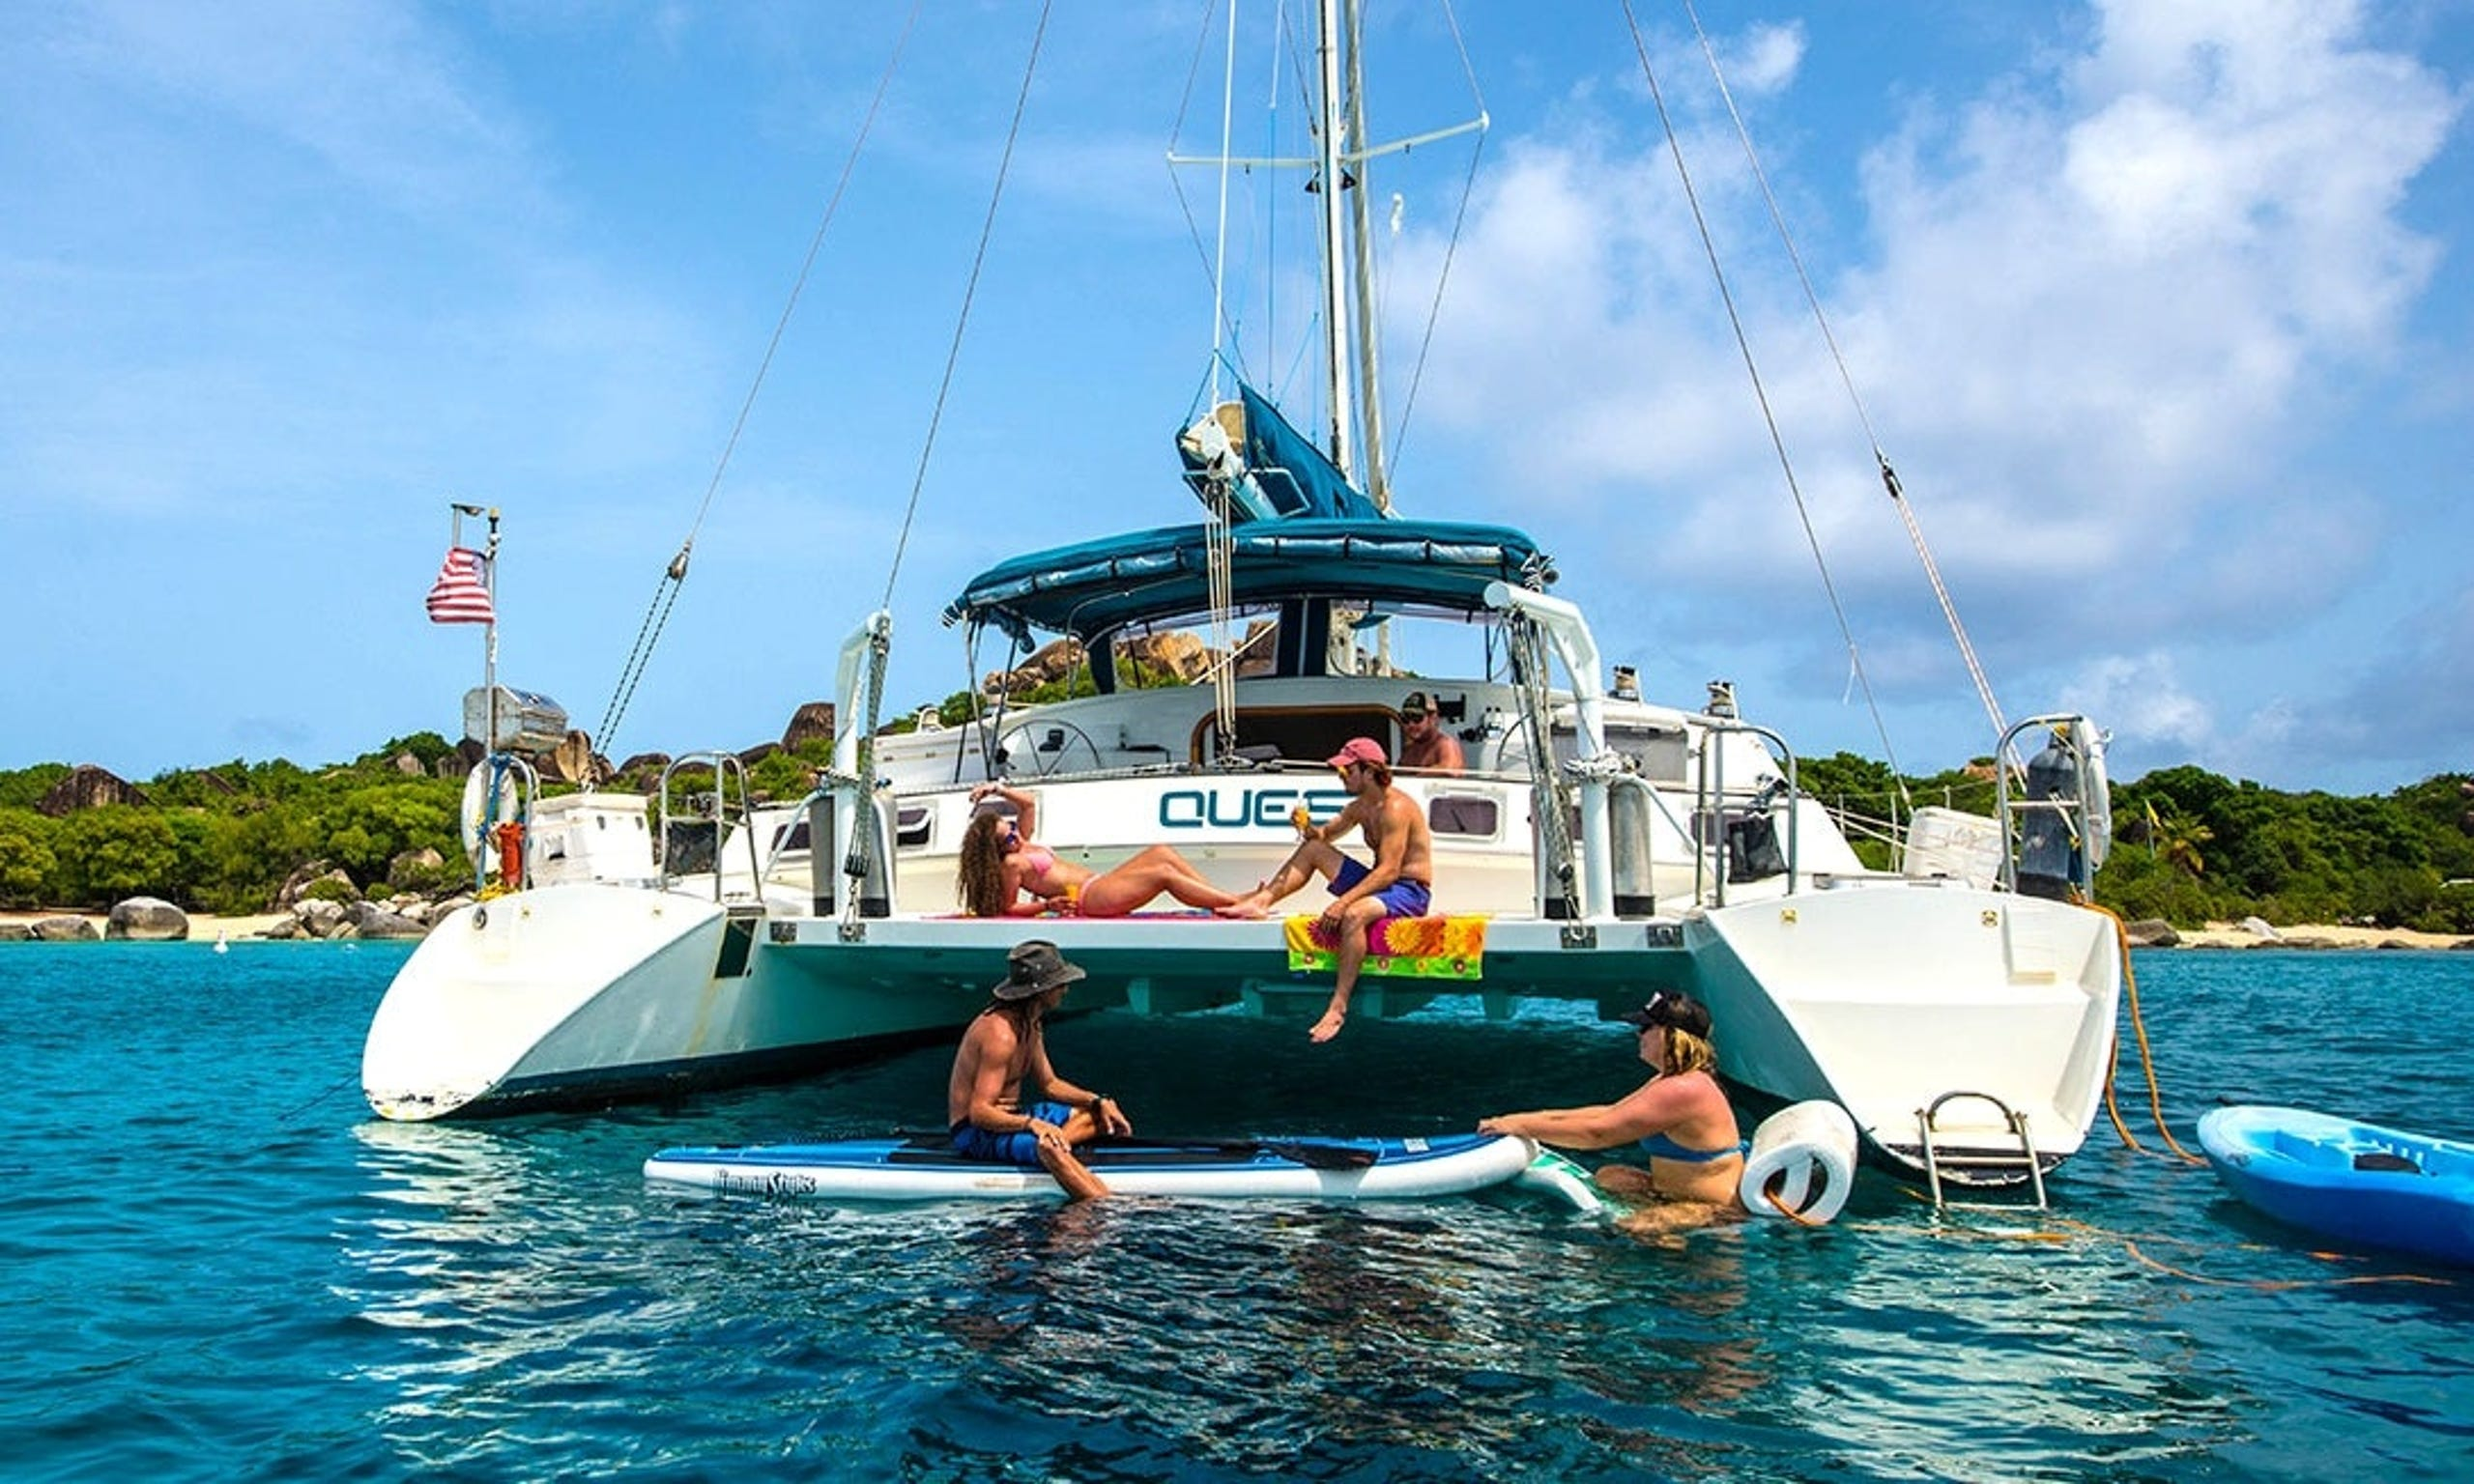 Luxury vacation by renting a boat